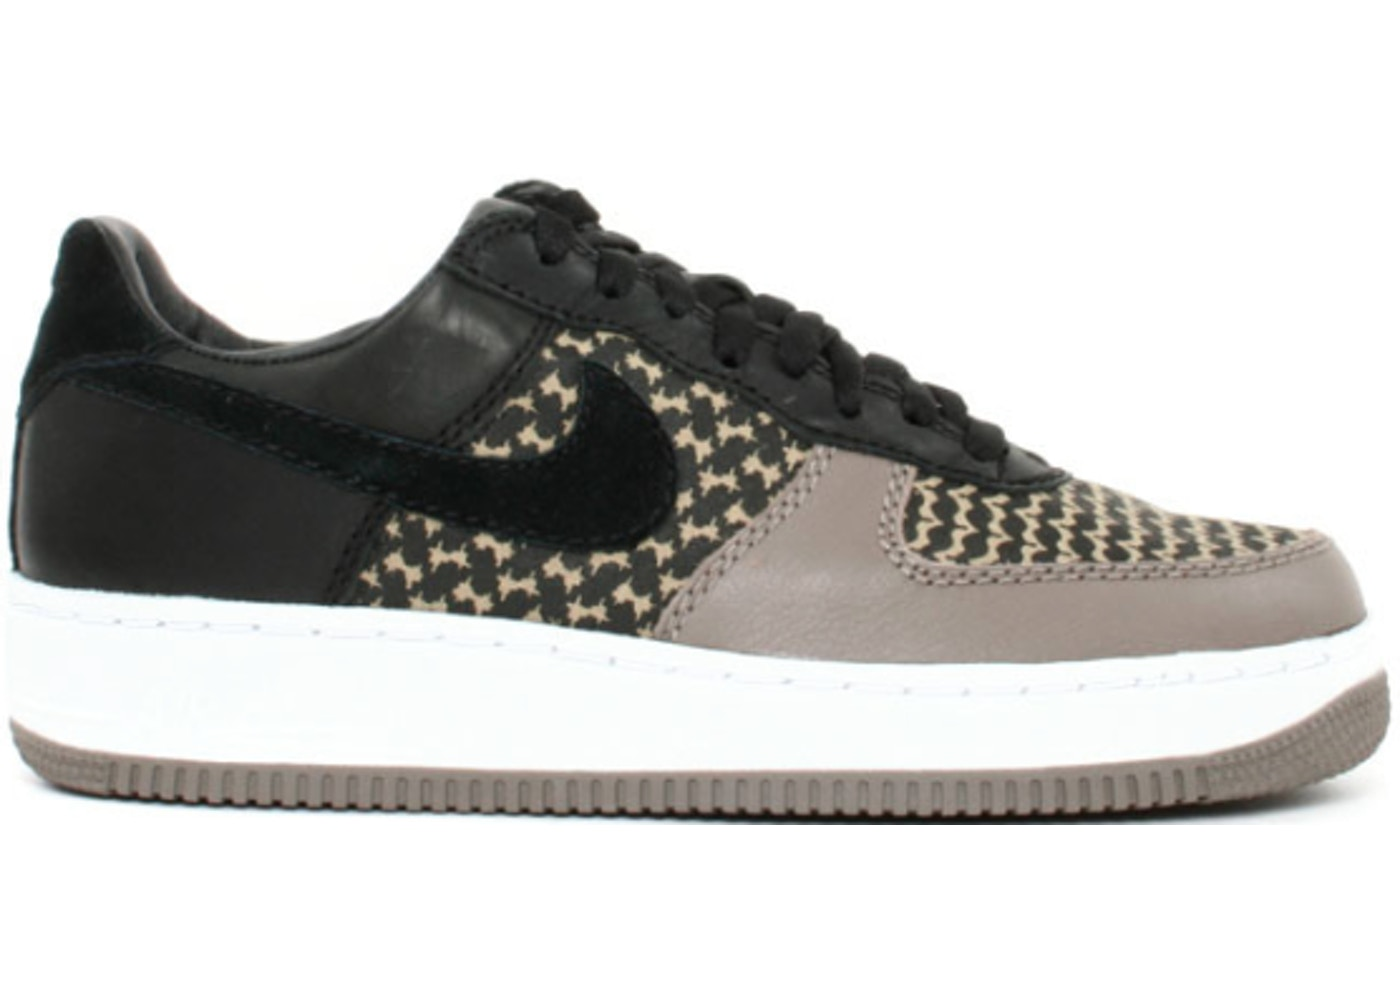 82ccc1b0e4 Air Force 1 Low UNDFTD Green-Olive - 313213-032